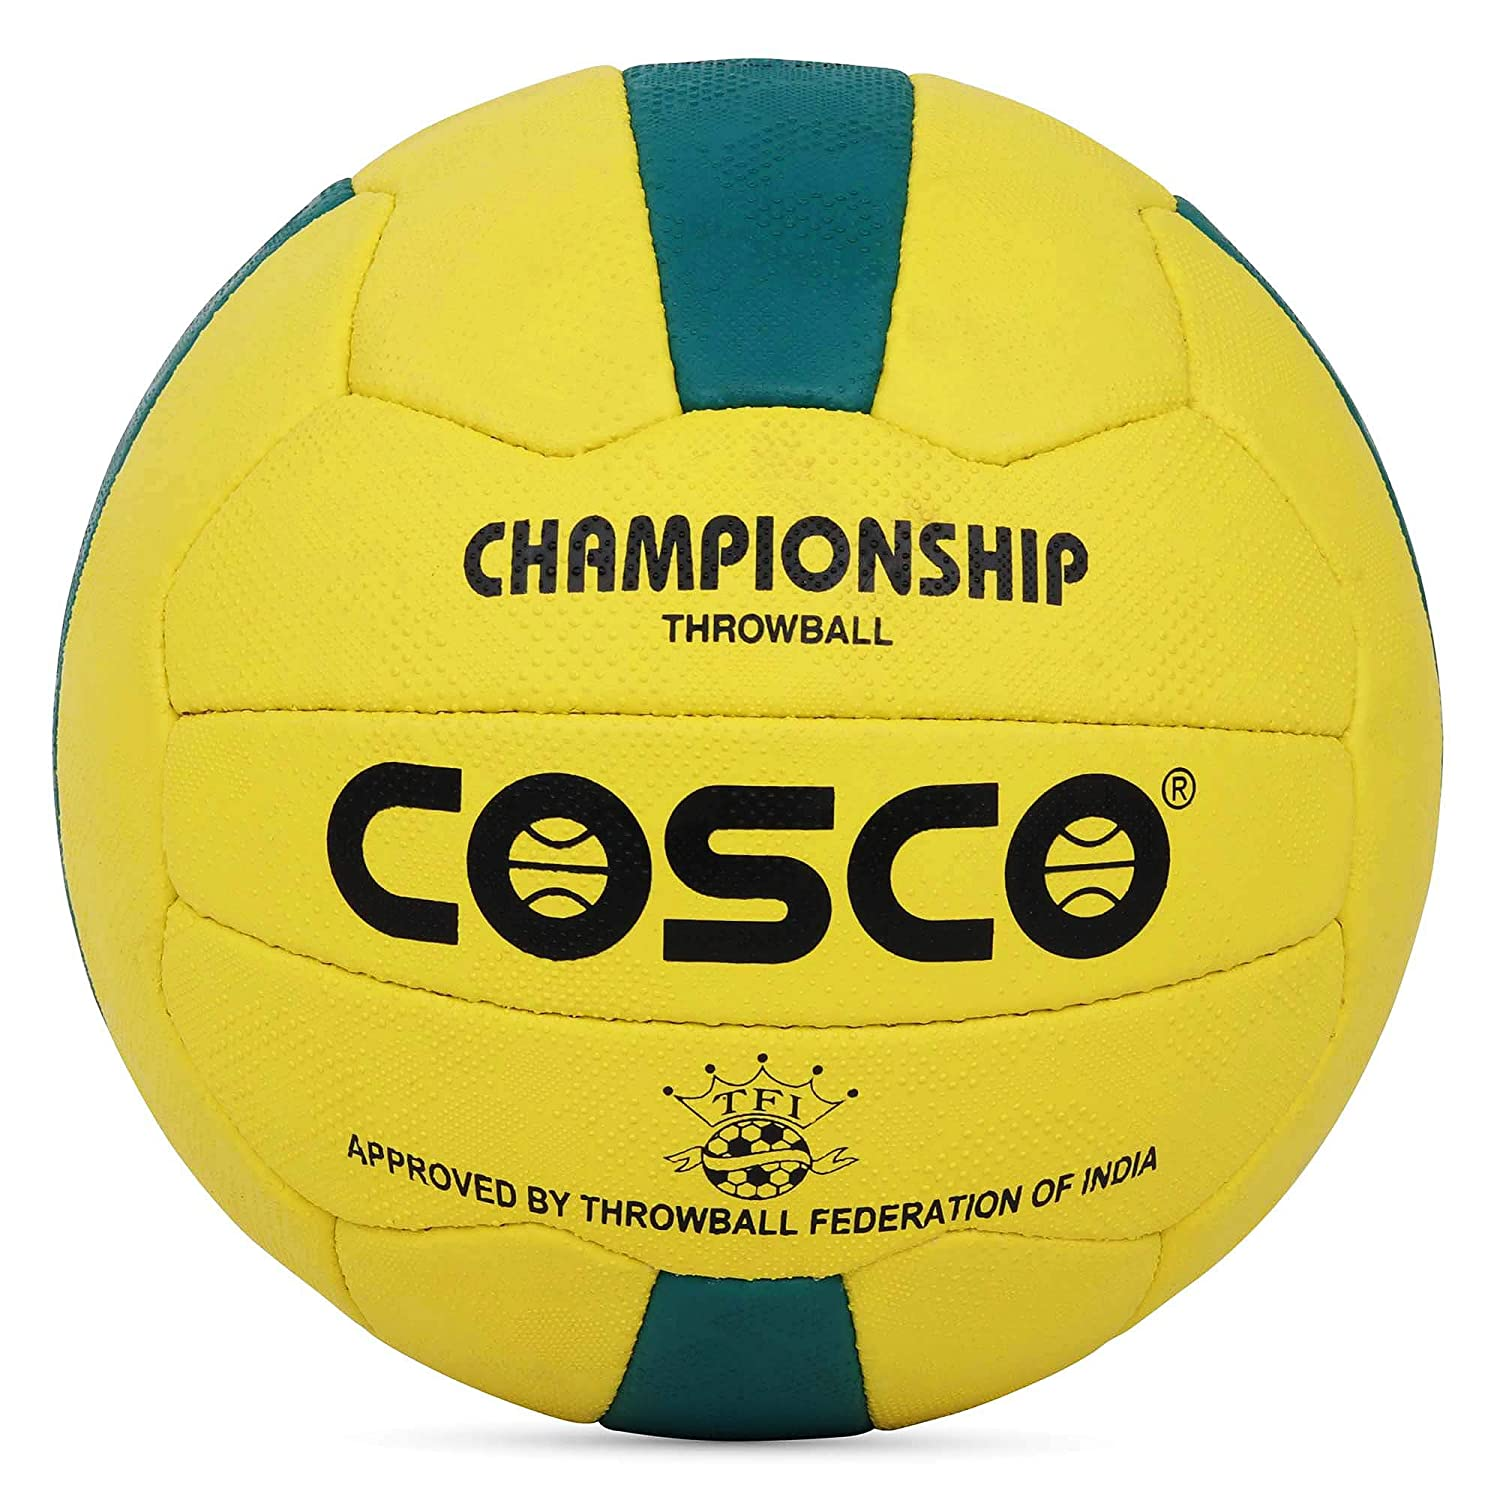 Cosco Championship Throw Ball